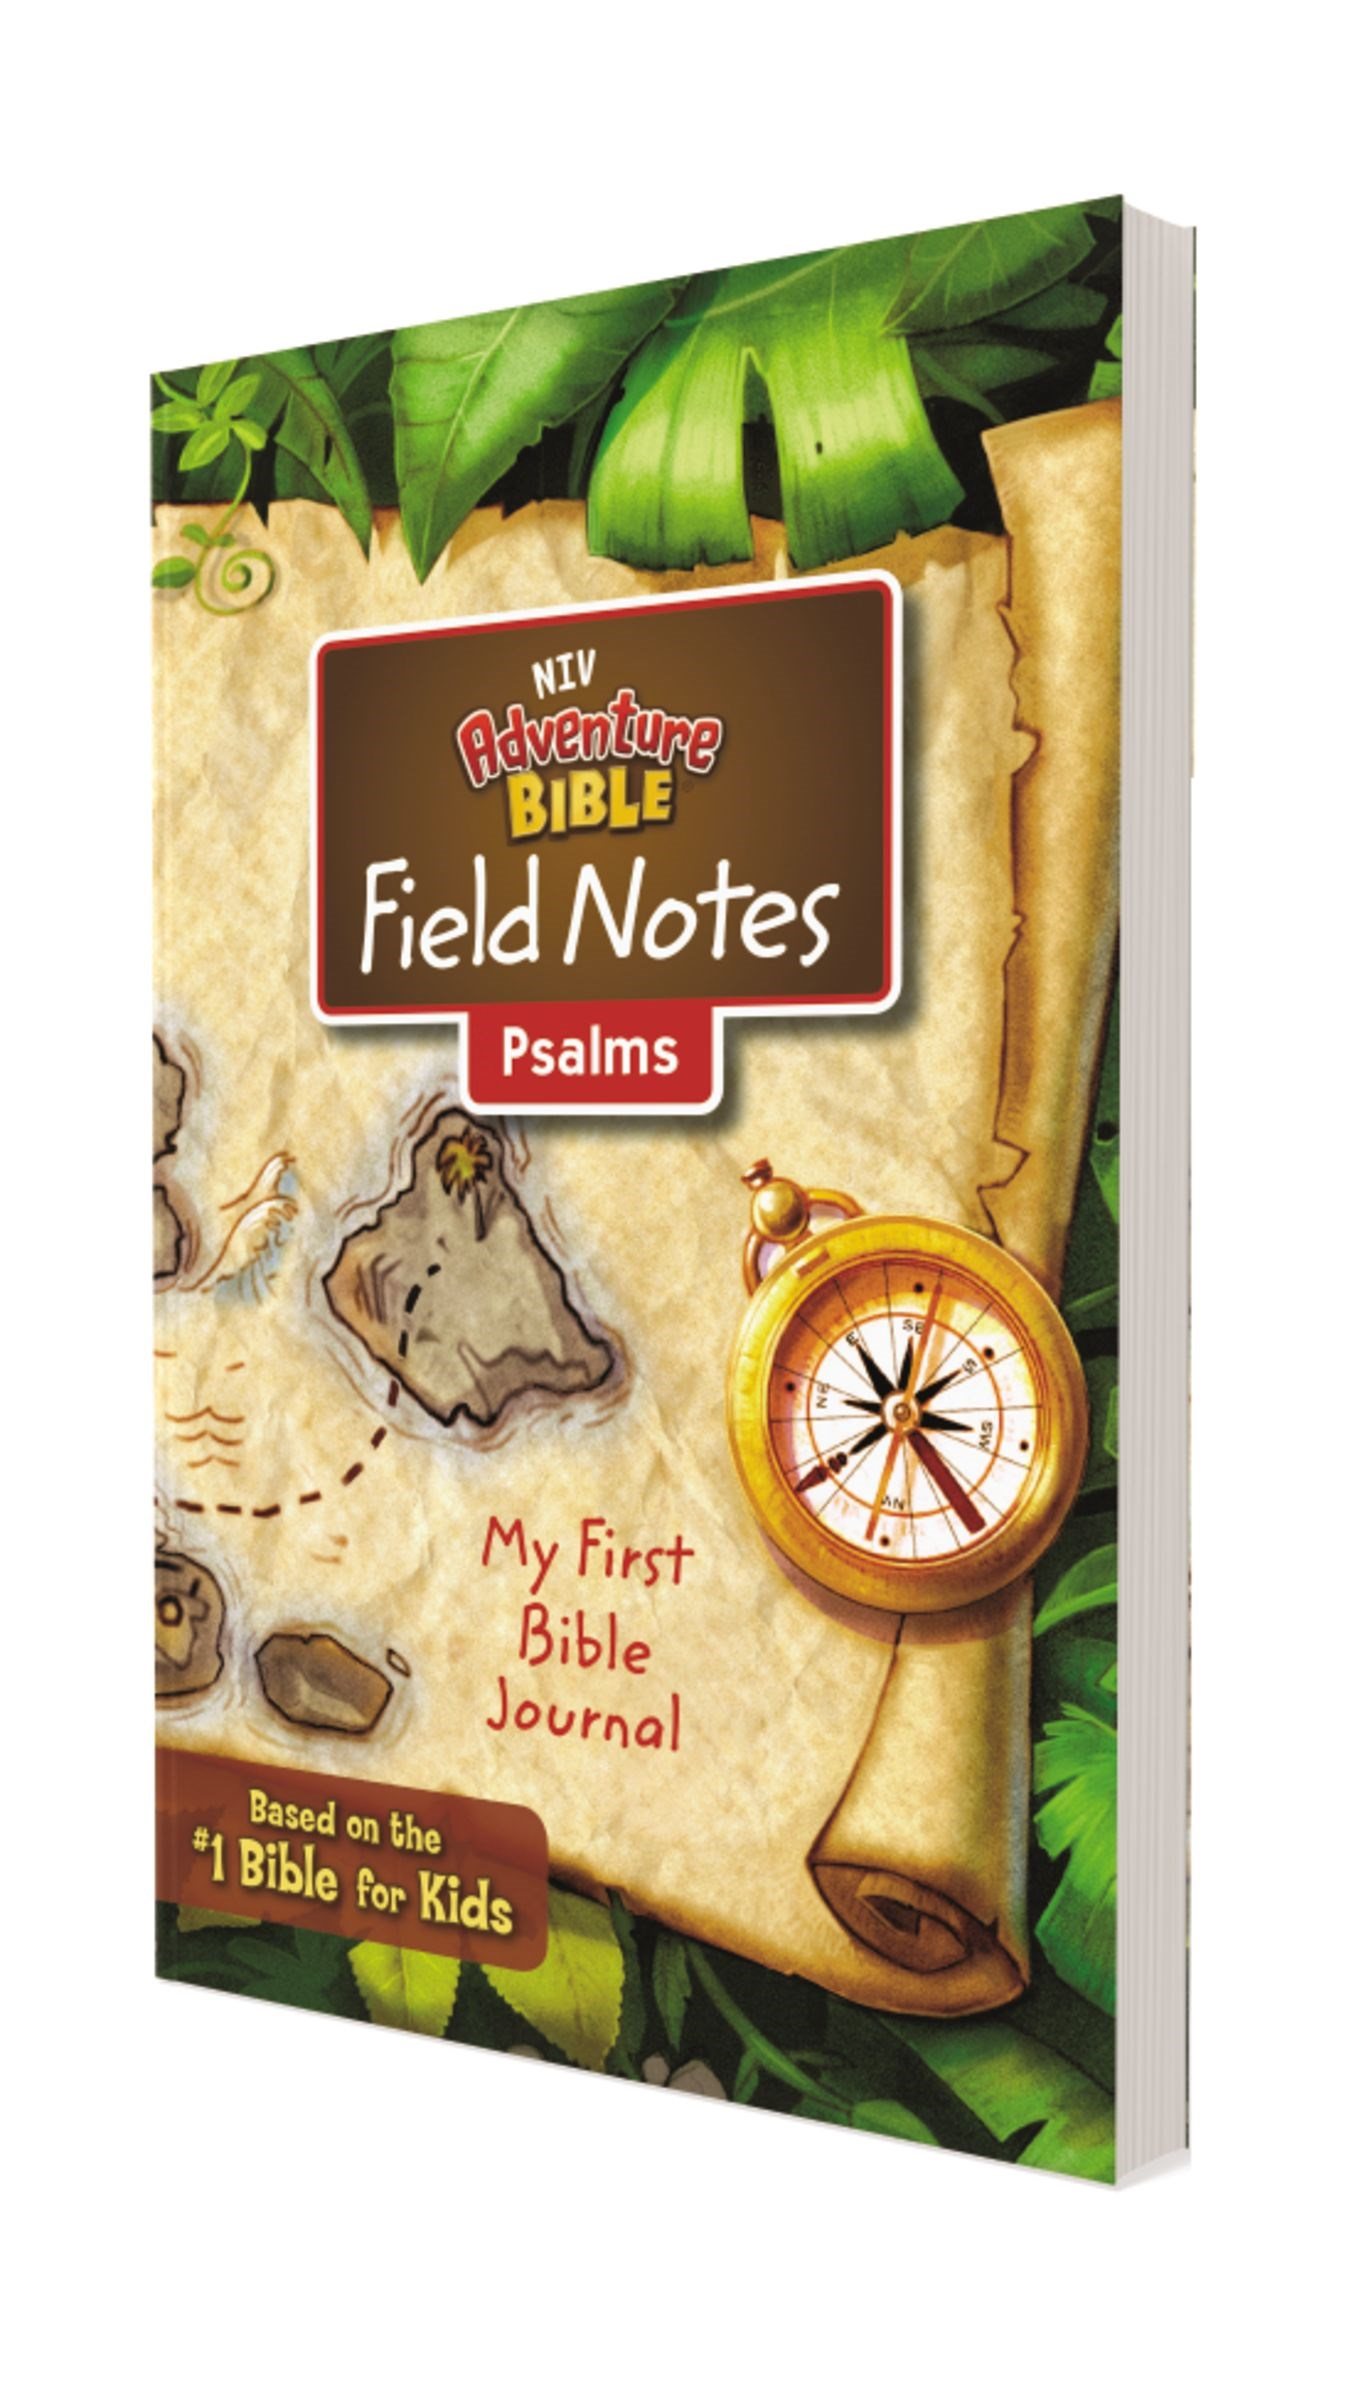 NIV Adventure Bible Field Notes: Psalms (Comfort Print)-Softcover